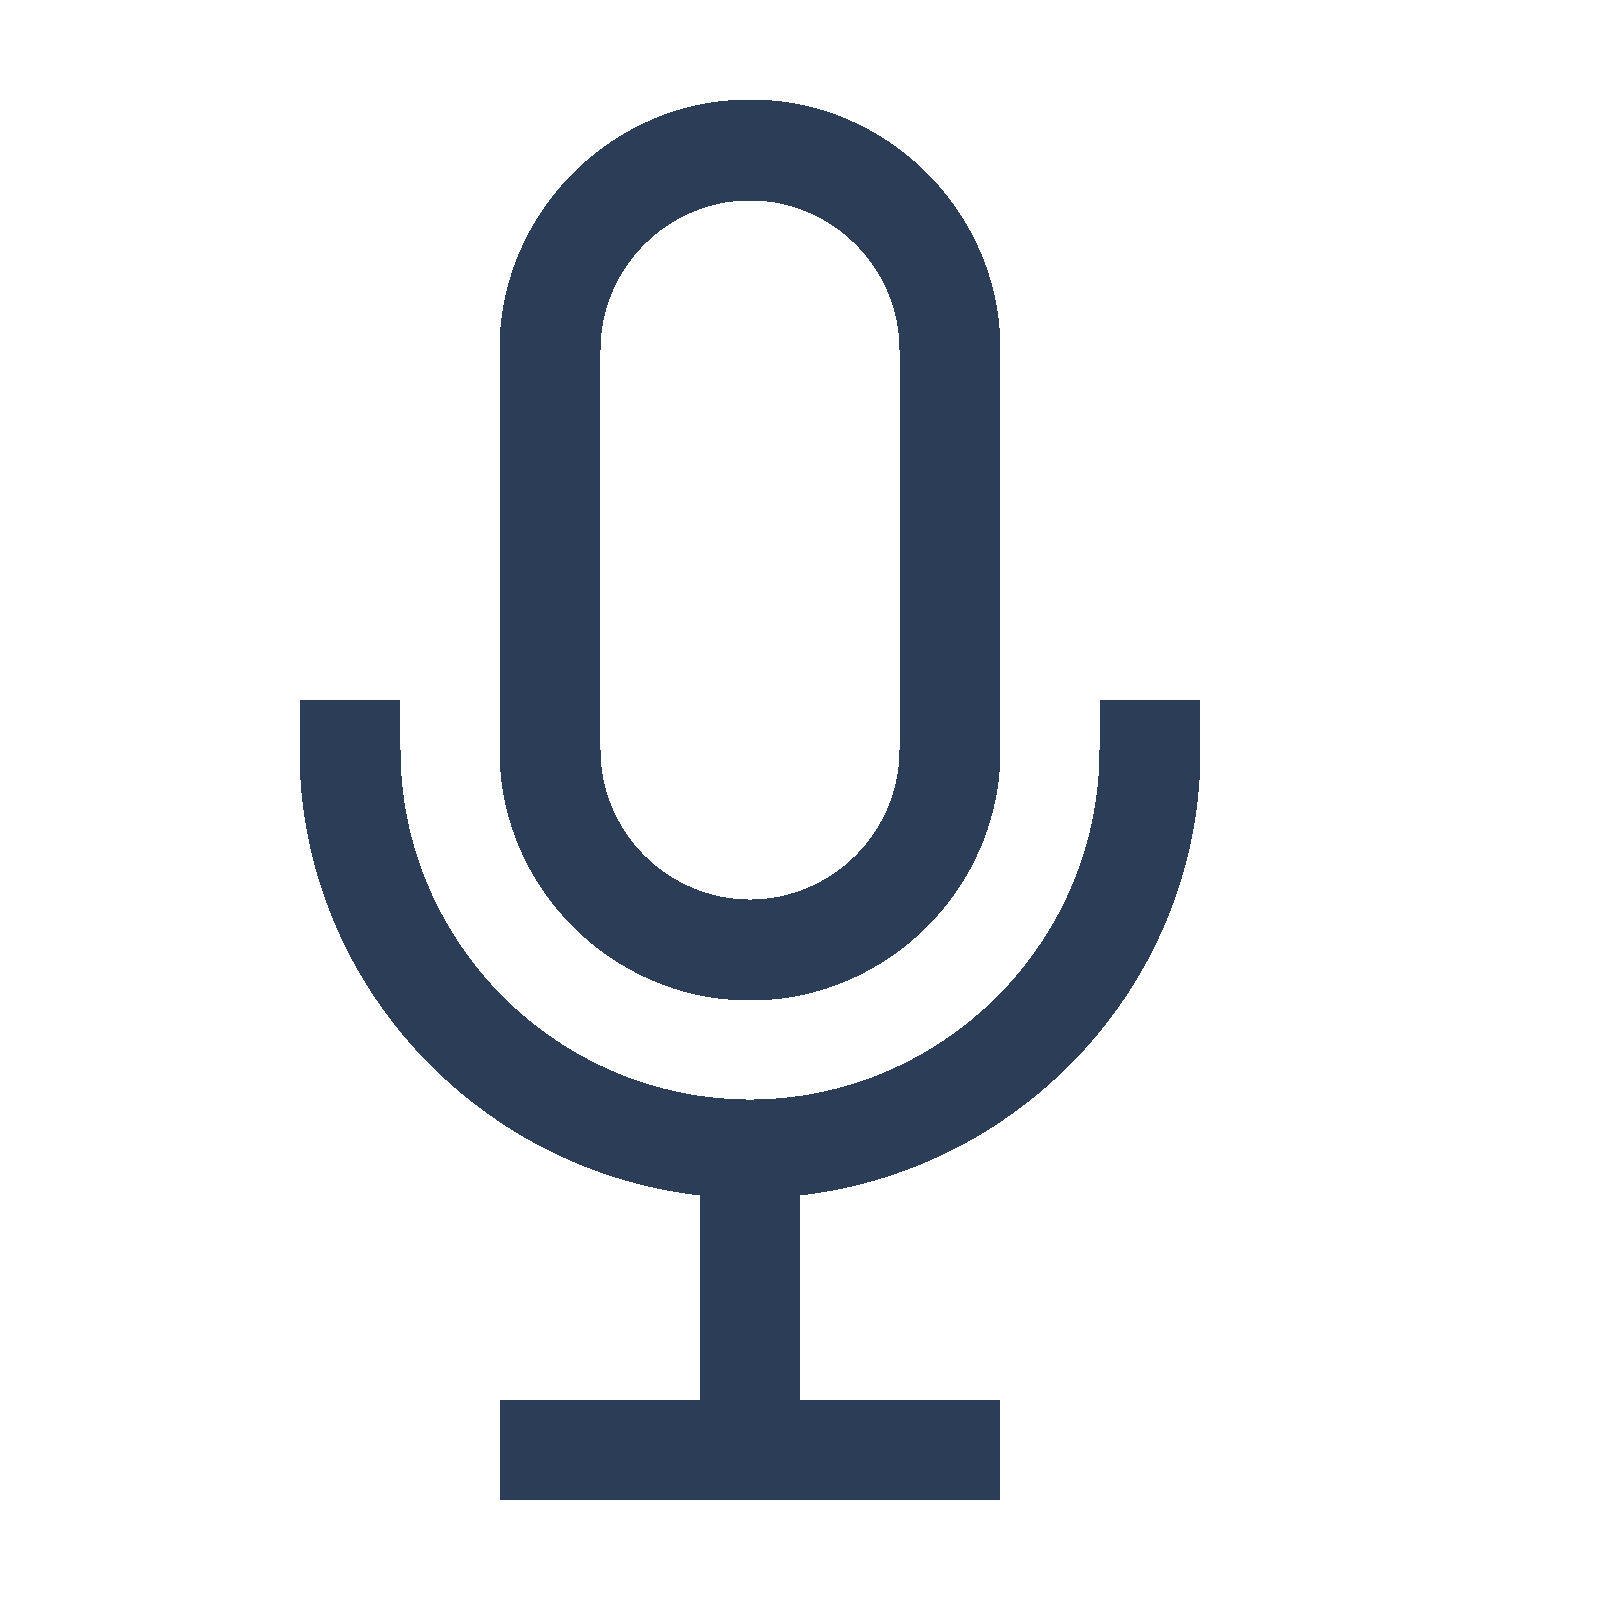 microphone glyph